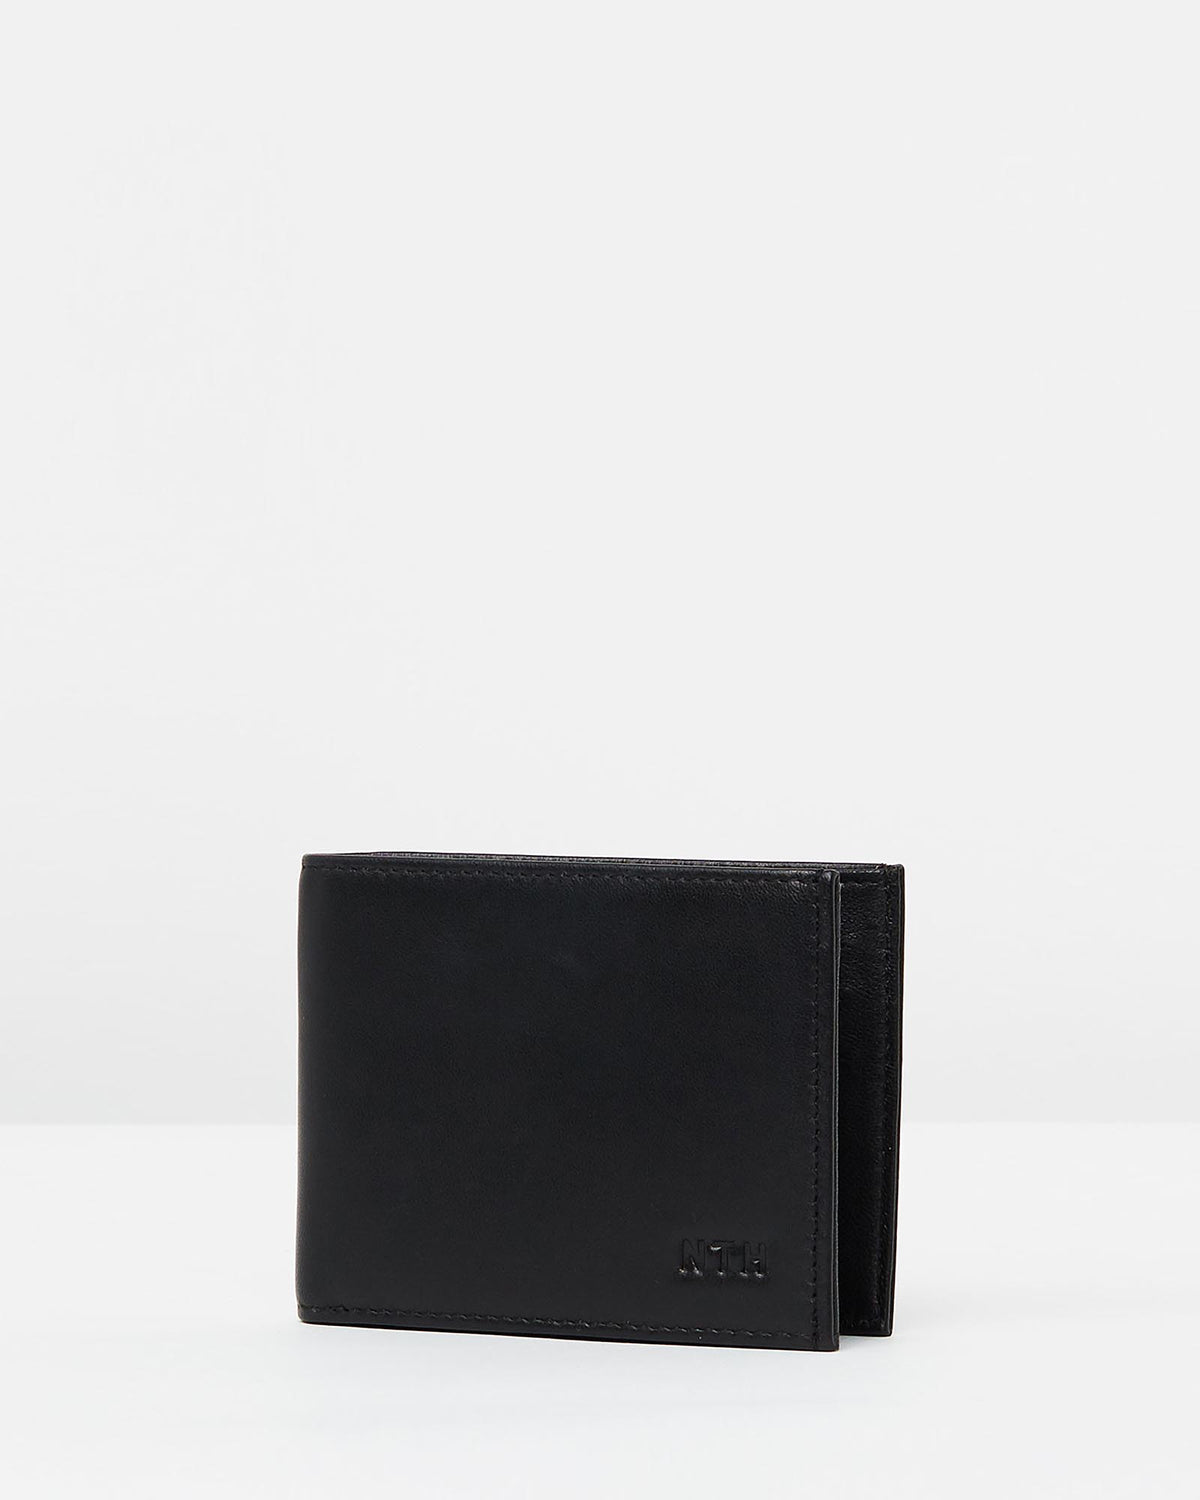 The Lone Wolf Wallet Leather Black